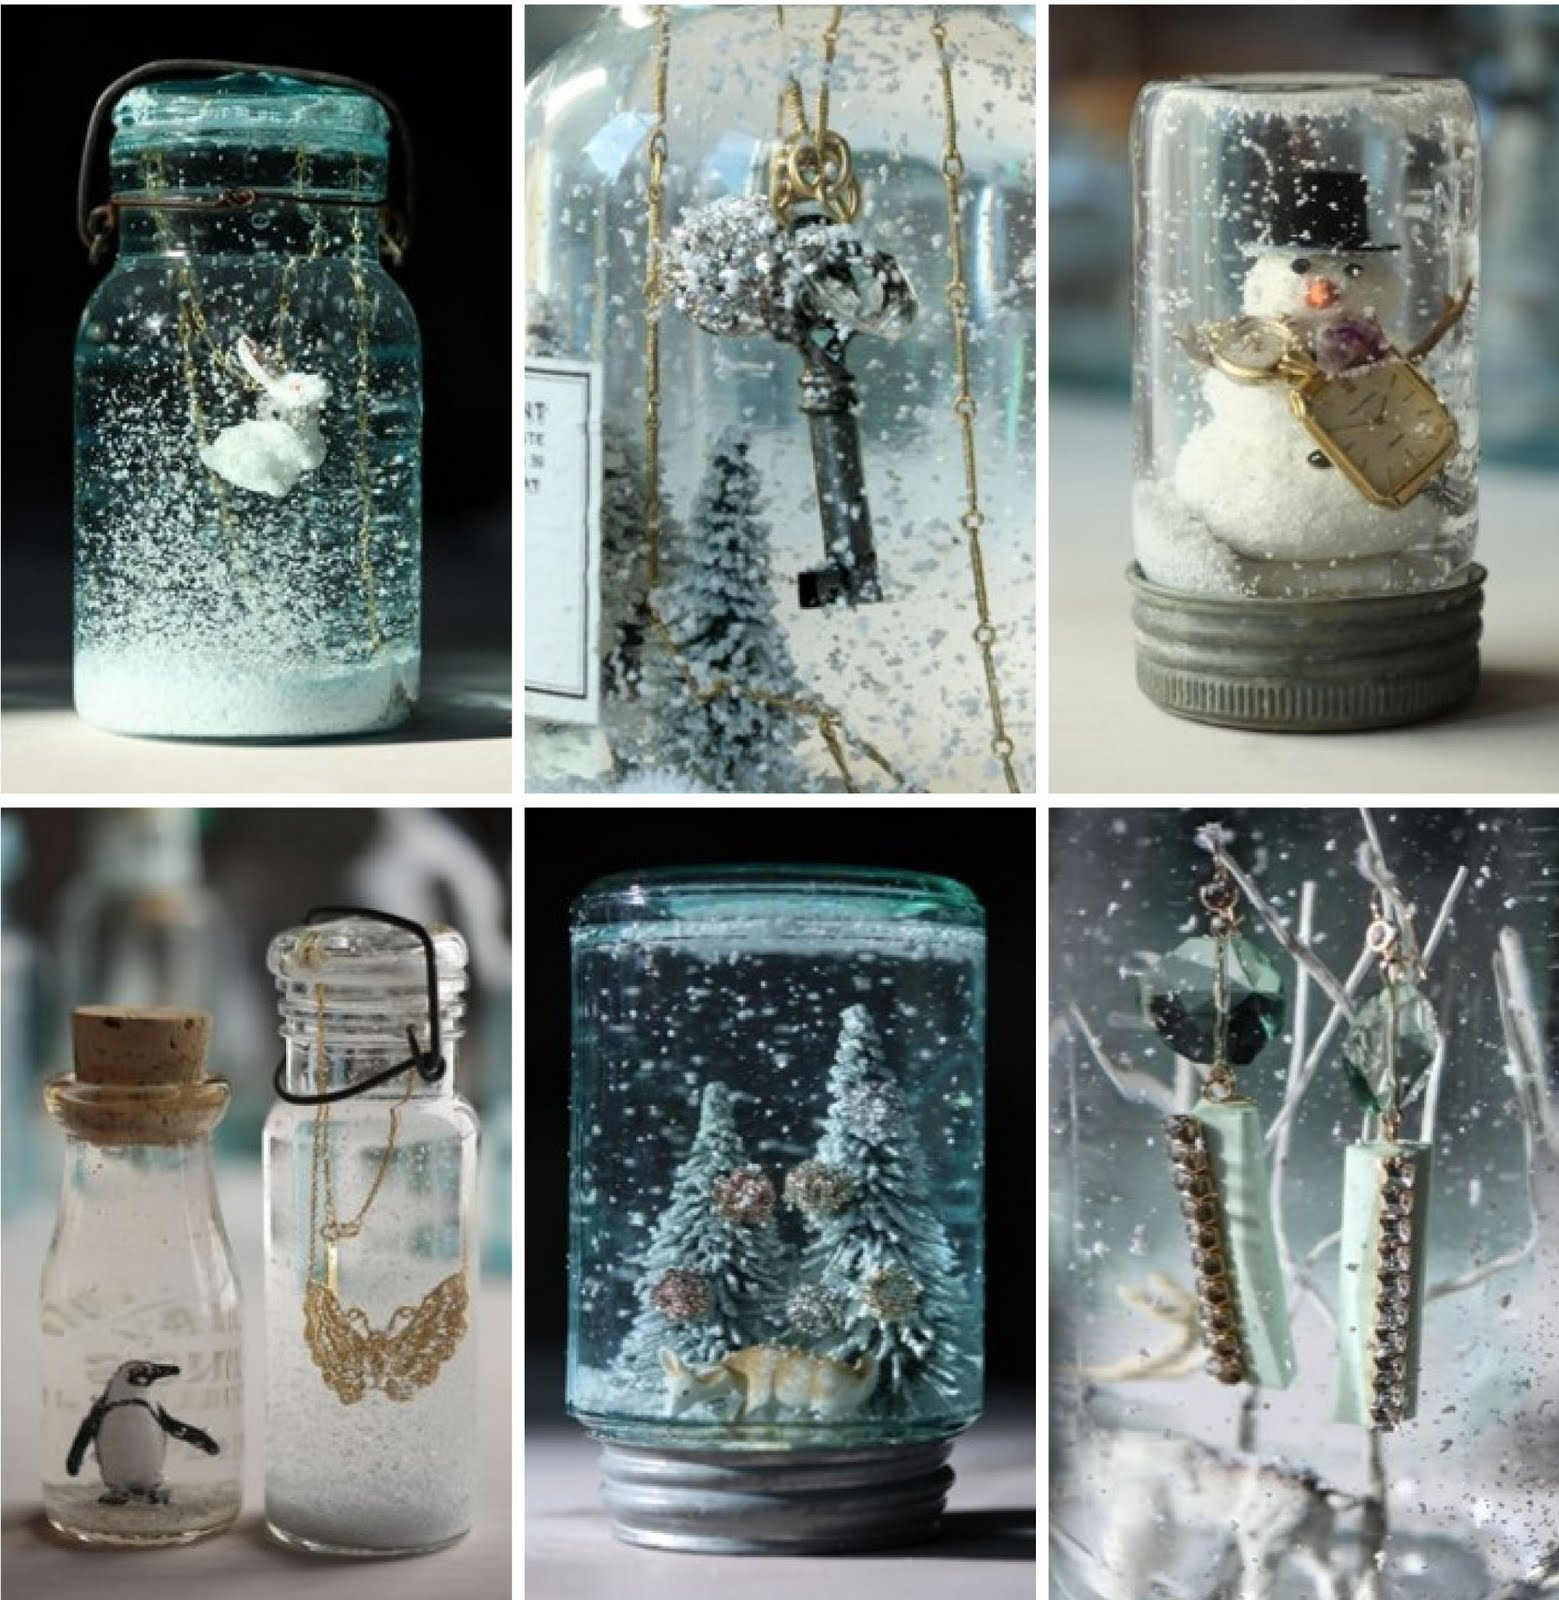 grand design mason jar snow globes. Black Bedroom Furniture Sets. Home Design Ideas